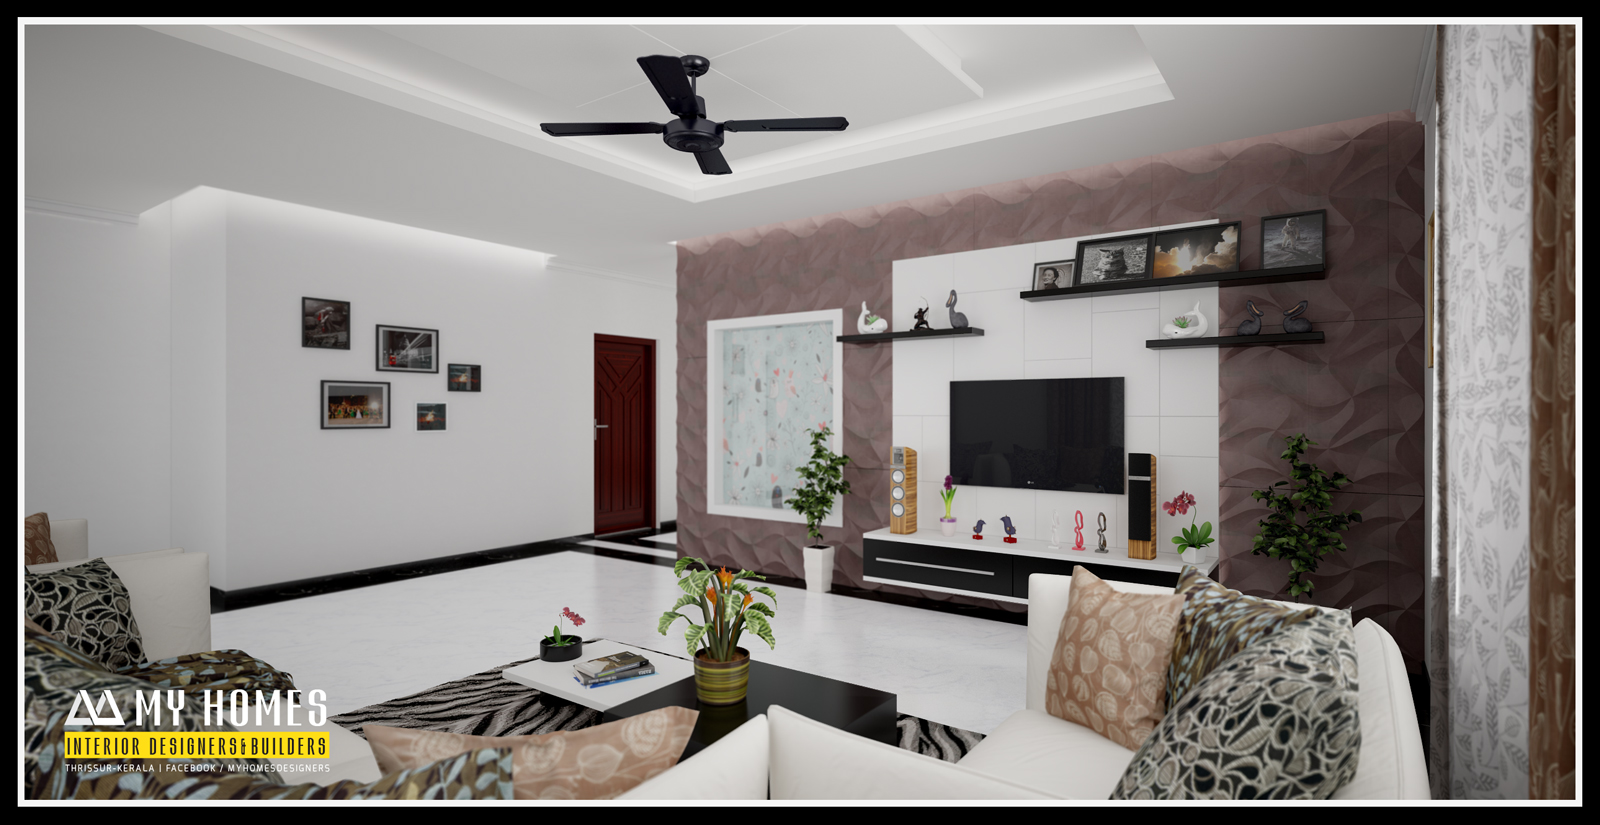 Kerala interior design ideas from designing company thrissur for Picture of interior designs of house